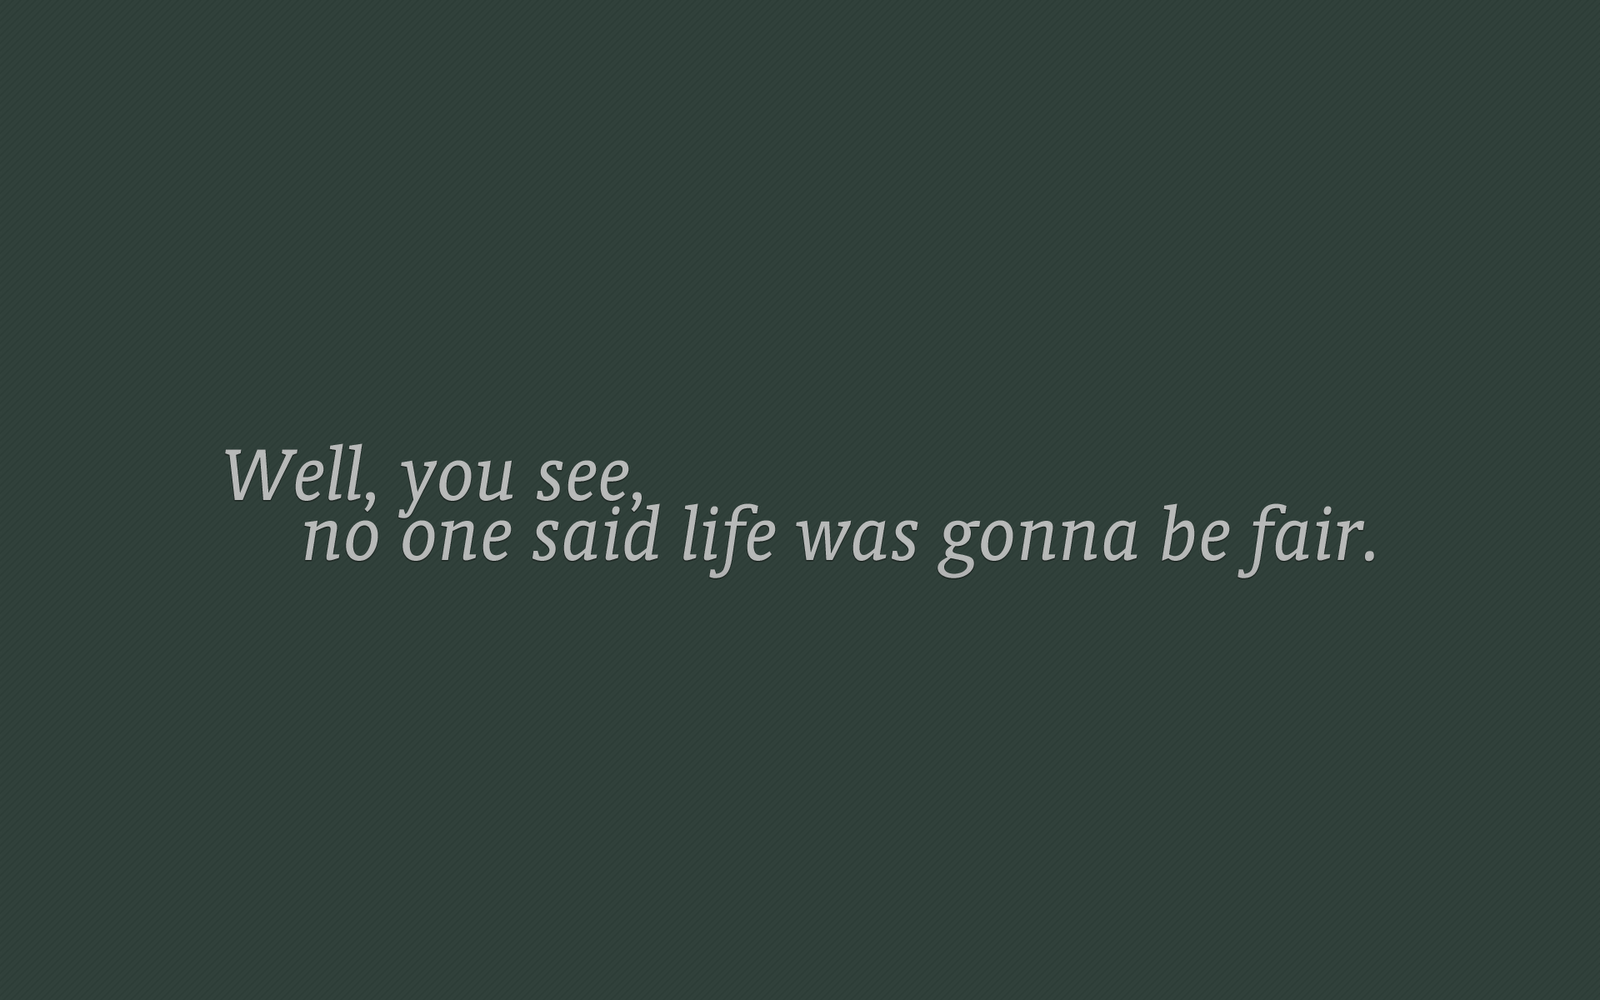 Wallpapers With Epic Quotes